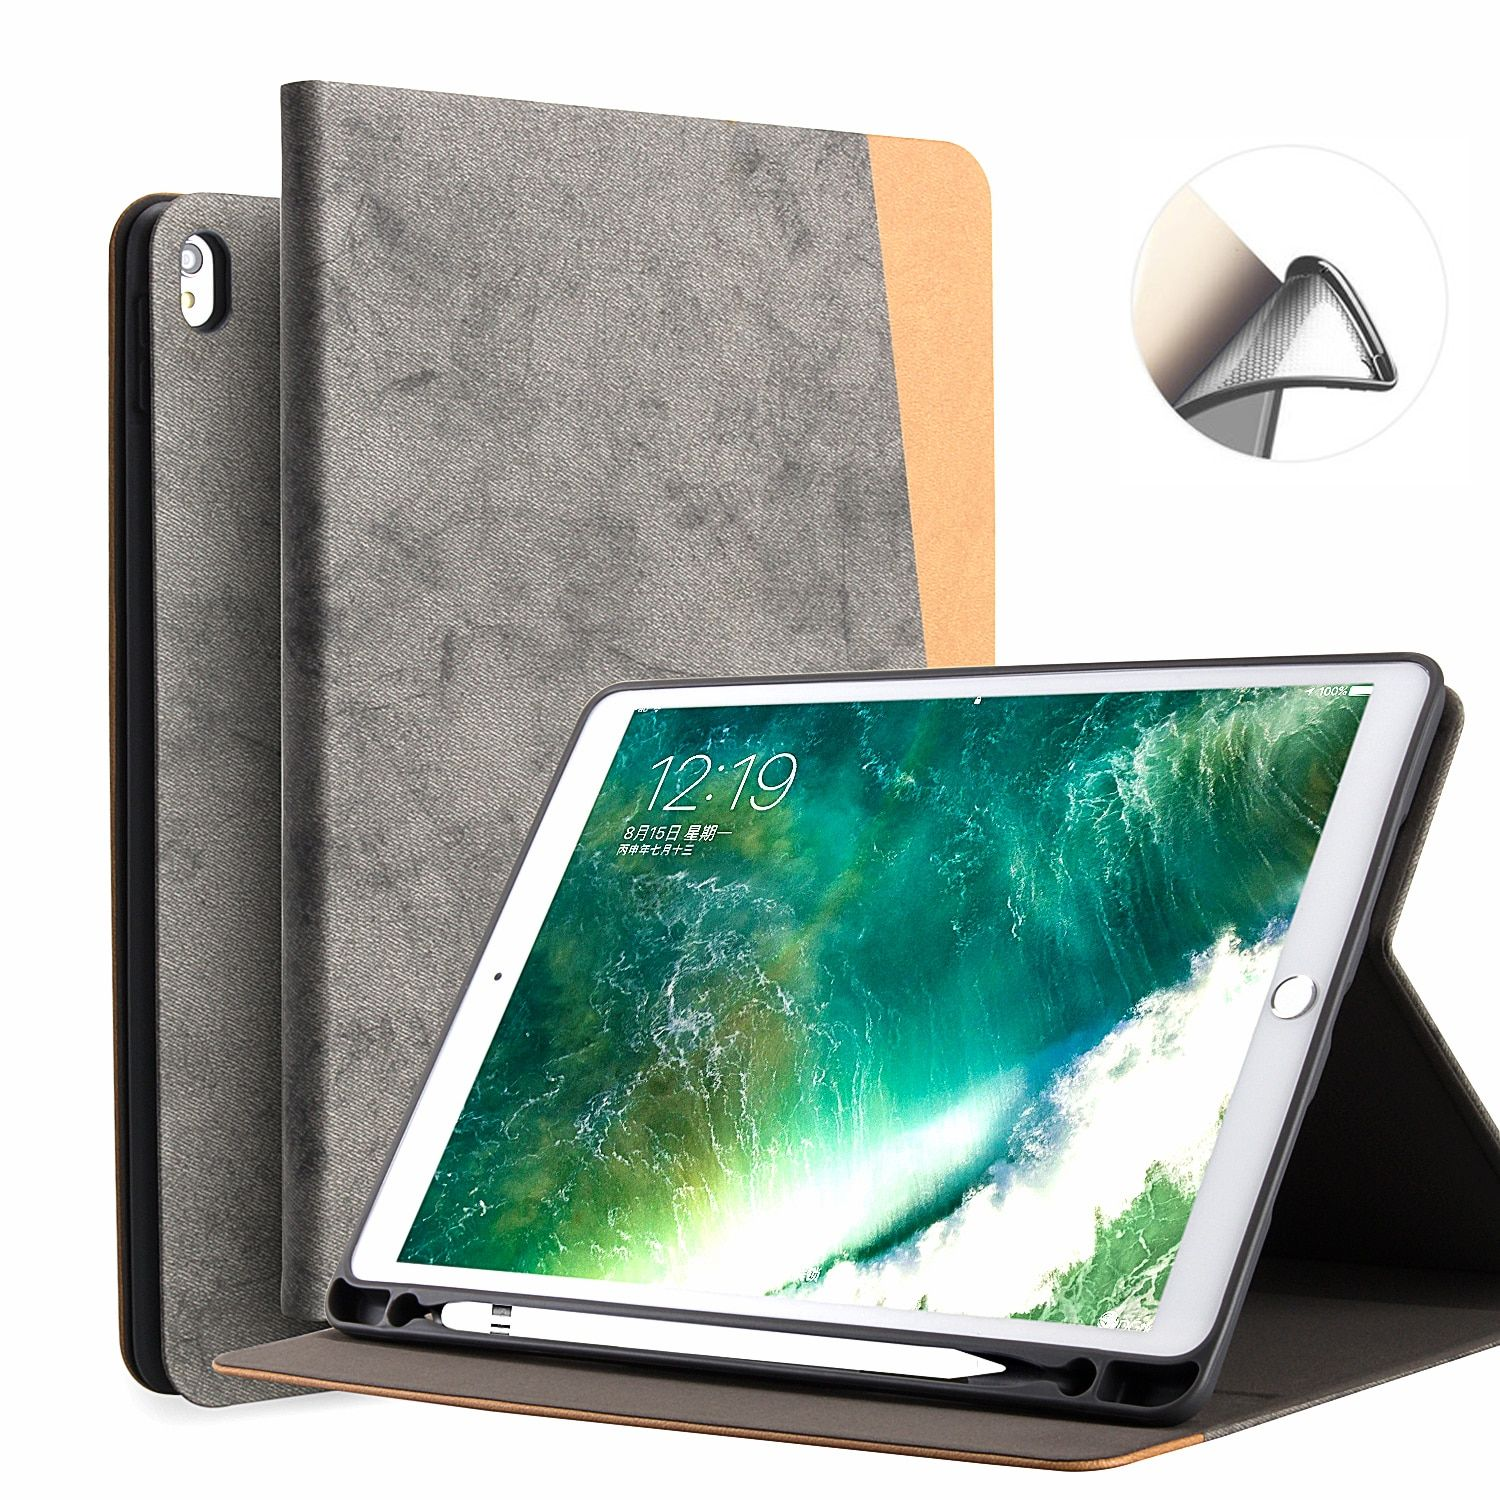 For Ipad Pro 10 5 Case Pu Leather Slim Smart Cover With Auto Sleep Wake For Apple Ipad Pro 10 5 Ipad Pro Apple Ipad Pro Apple Ipad